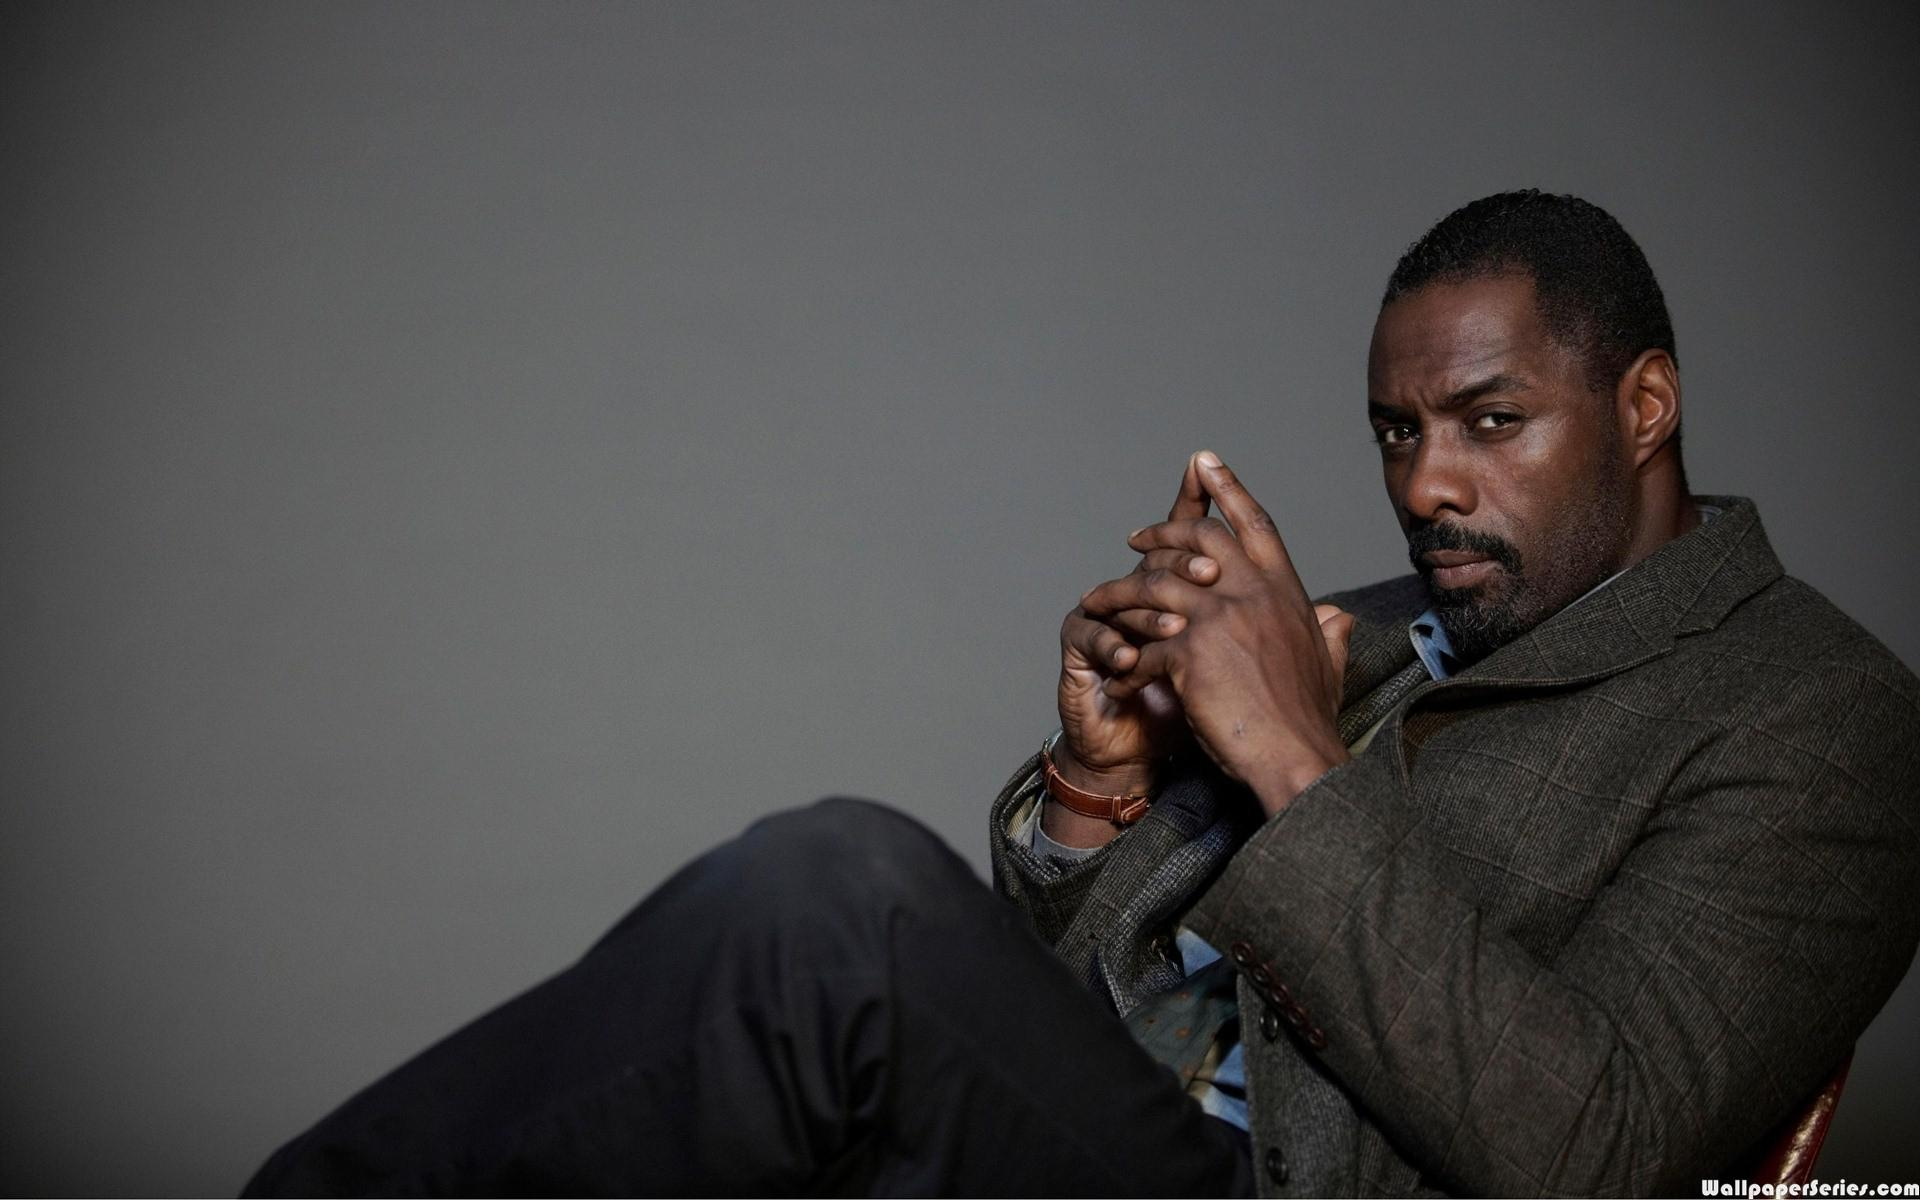 Idris Elba wallpaper 1920x1200 49620 1920x1200